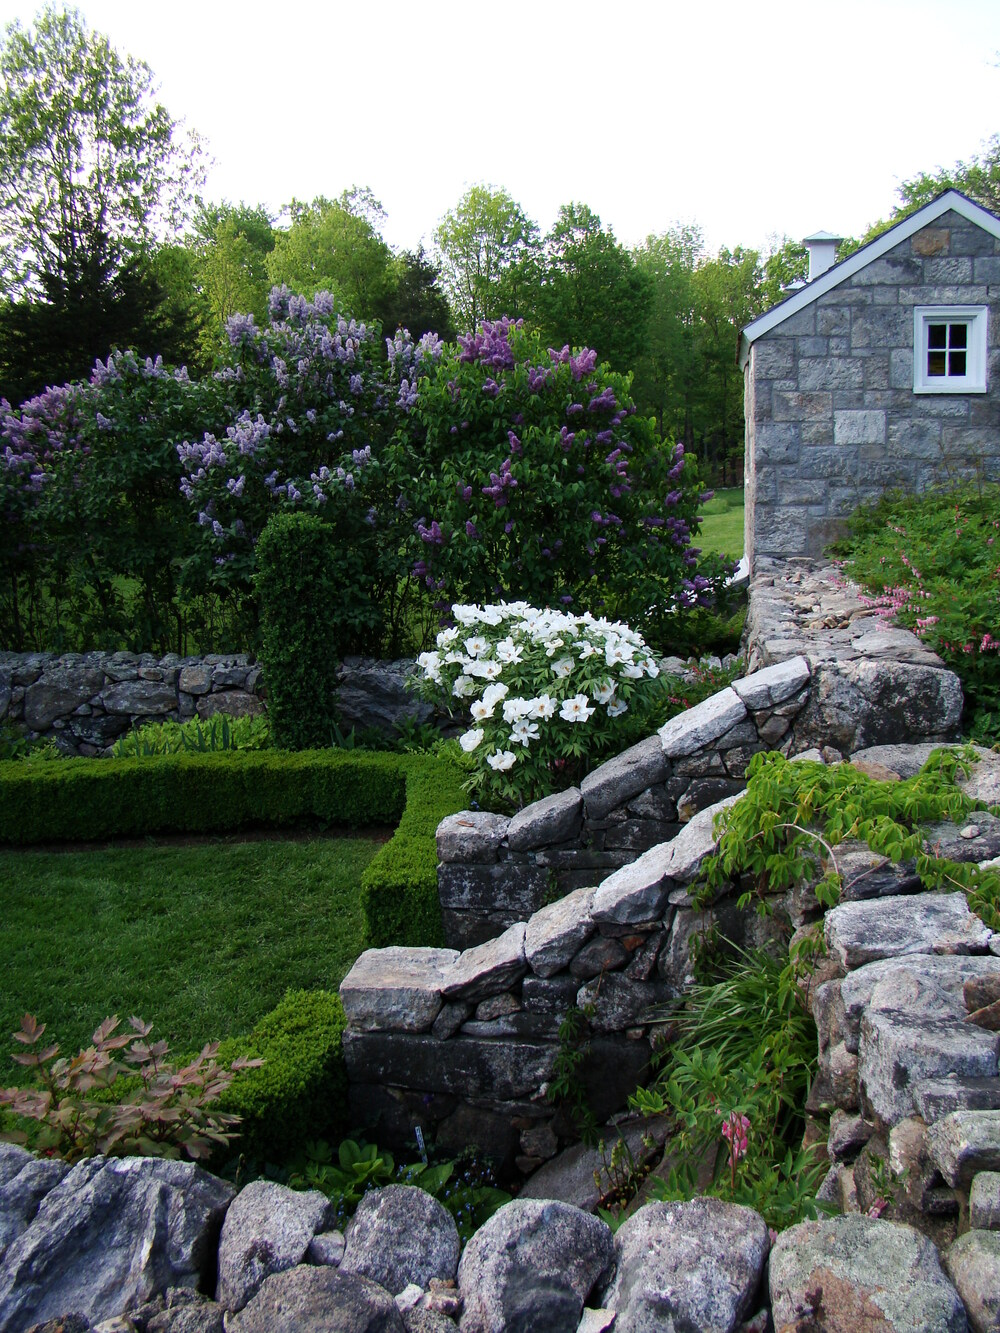 A shot of the gardens at Weir Farm. A low stone wall runs around the perimeter of the garden. Stone steps lead down into the space. A stone cottage can be seen in the distance. Several flowering shrubs are present.